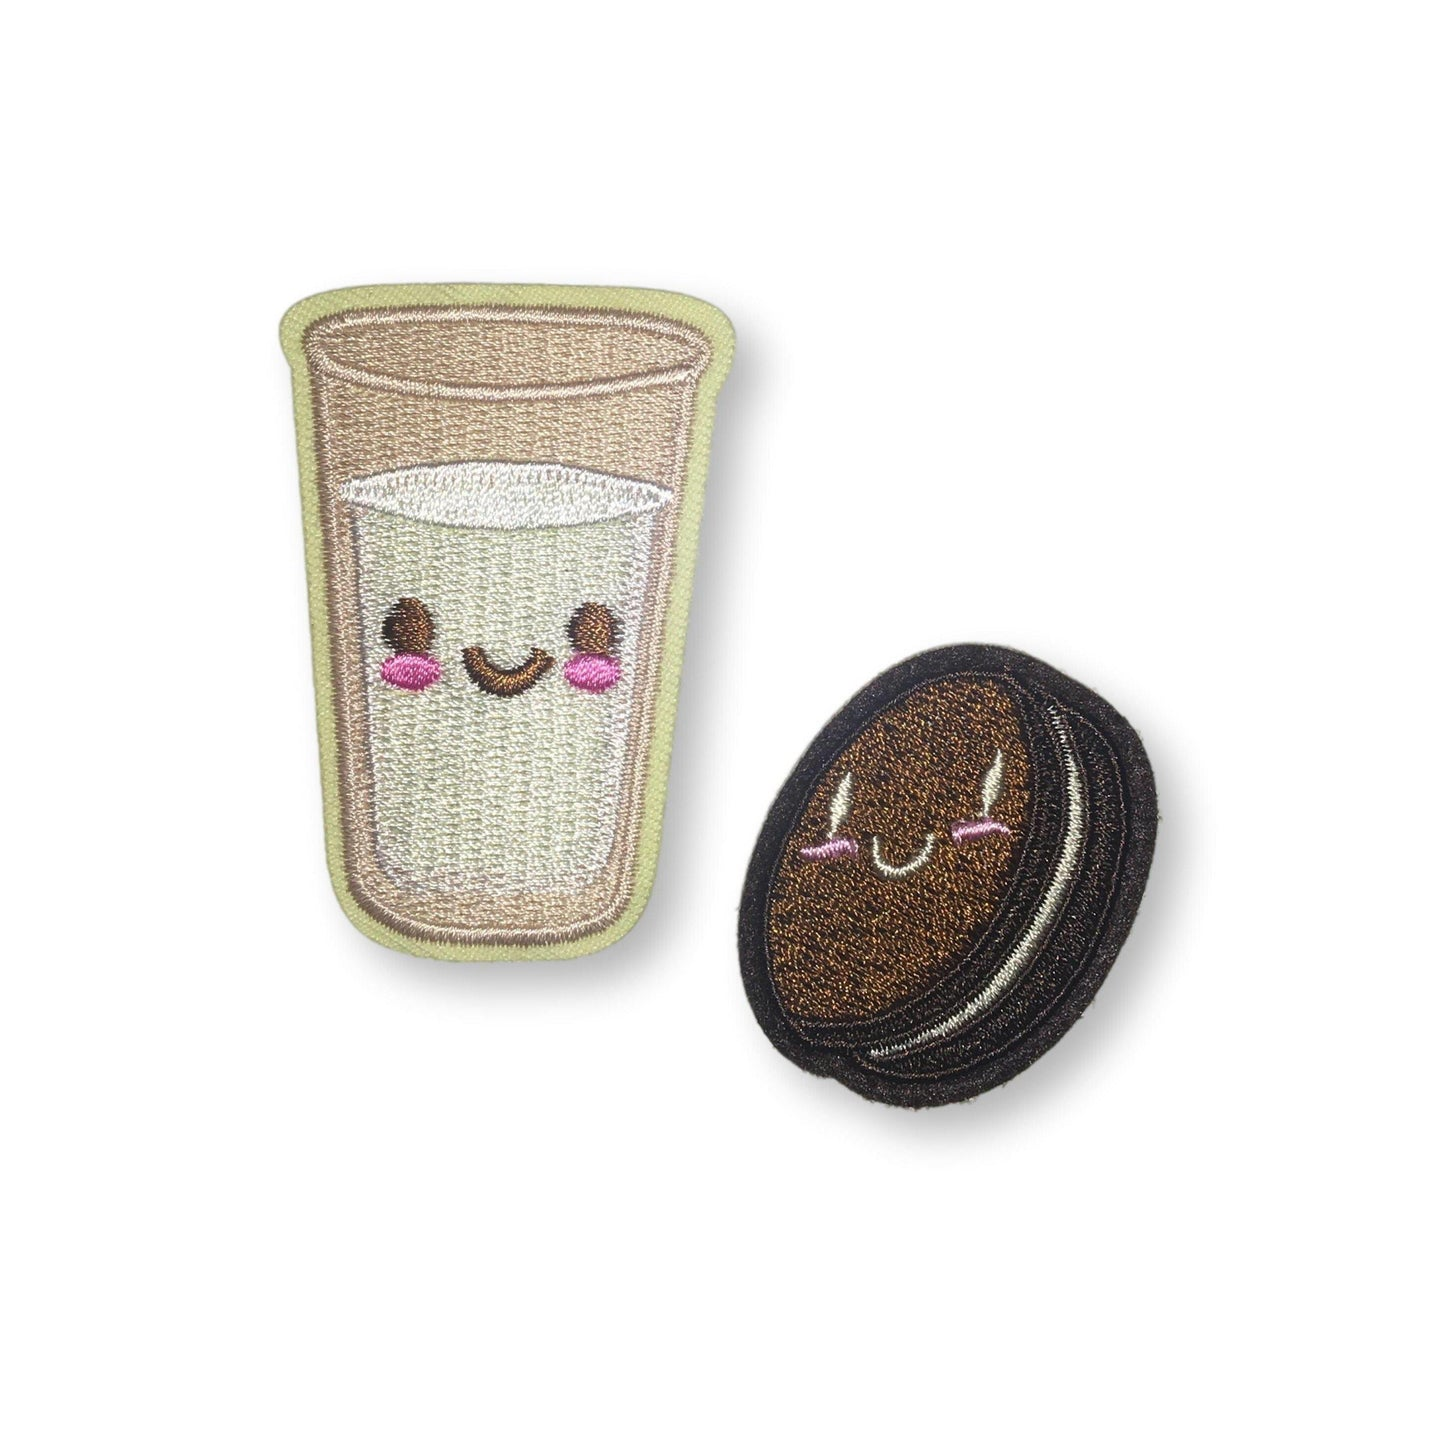 Cookies and Milk Embroidered Patch Set